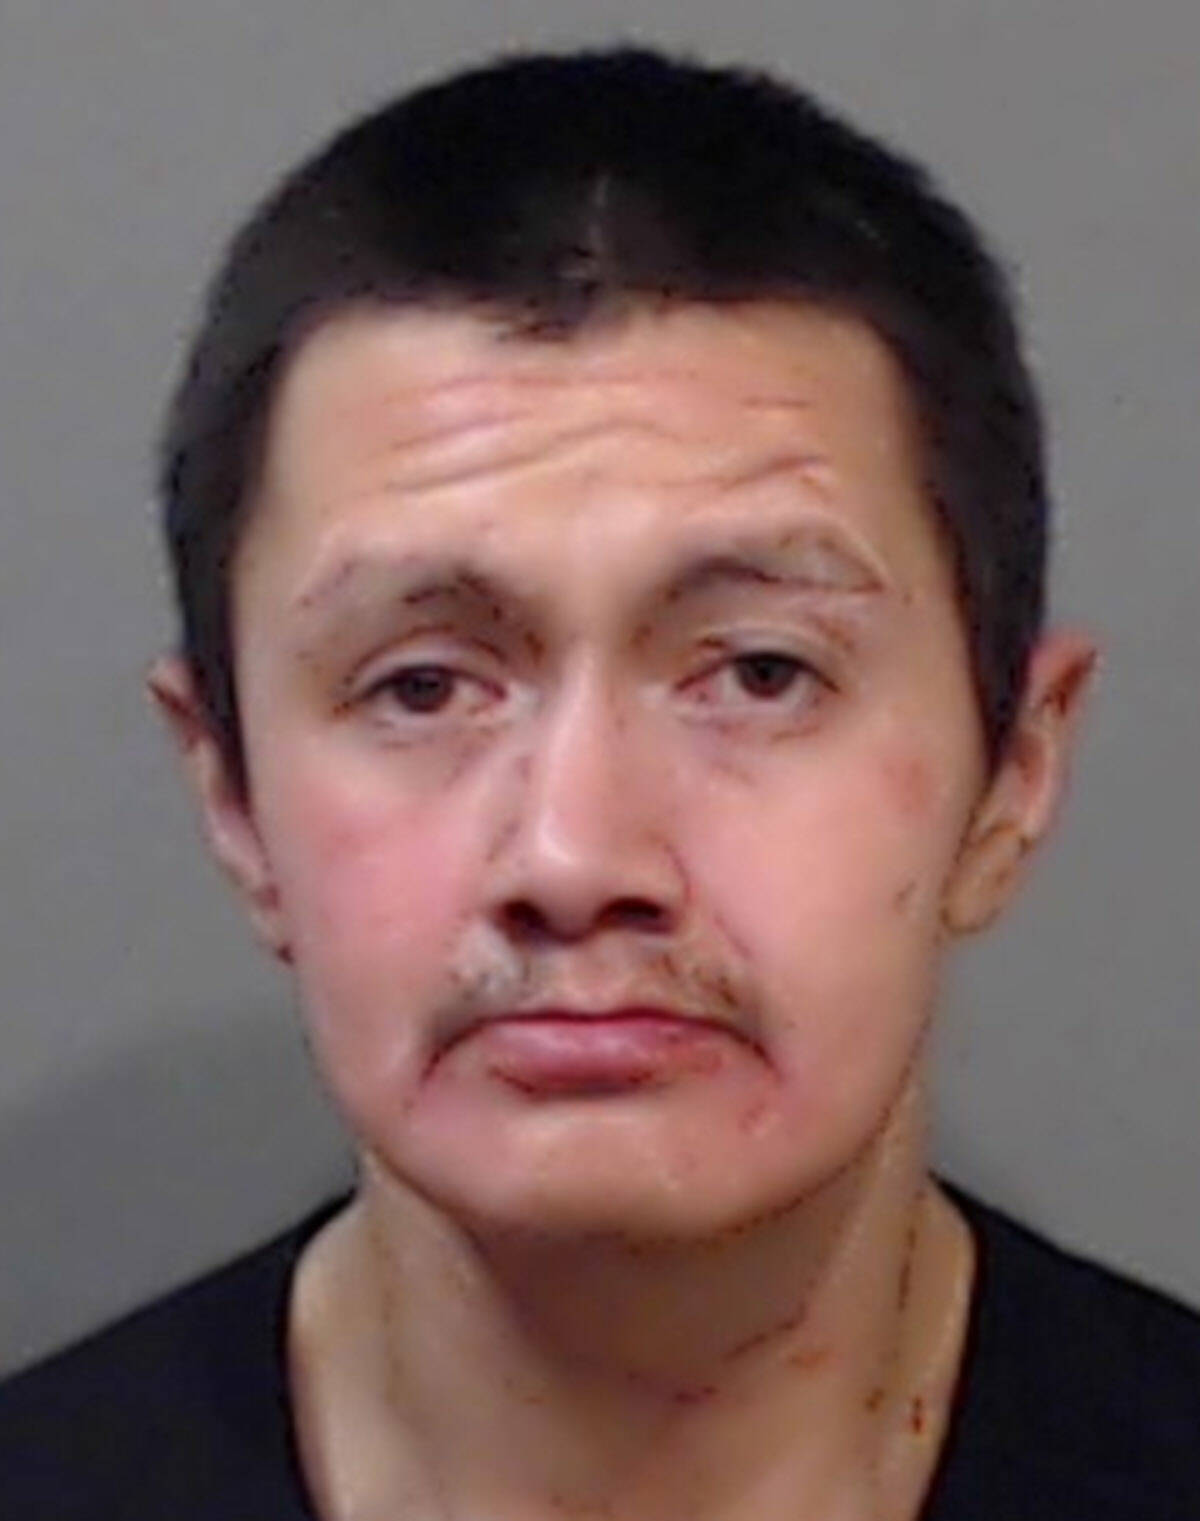 """Name: STEWART, Kenneth Age: 36 Height: 5'10"""" ft Weight: 155lbs Hair: Black Eyes: Brown Wanted: Assault with a Weapon Warrant in effect: September 21, 2021 Parole Jurisdiction: Chilliwack, BC"""